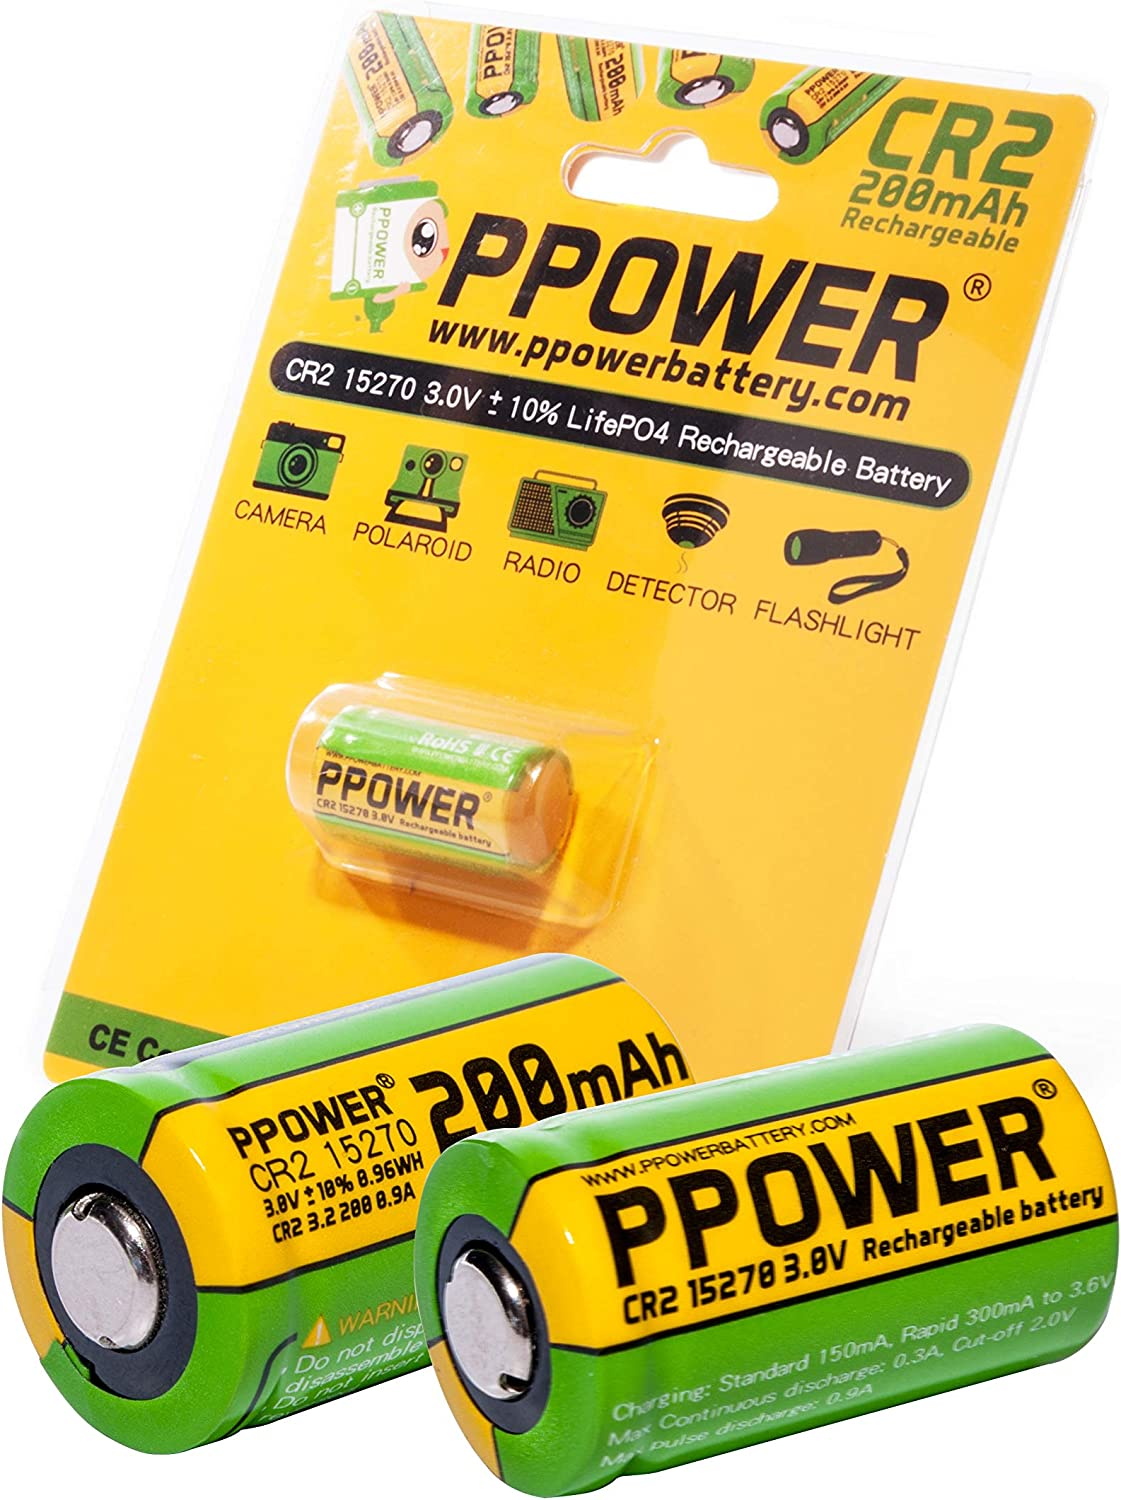 2 pilas recargables PPOWER 3 V de capacidad real de 200 mAh CR2 15270 15266 LiFePO4